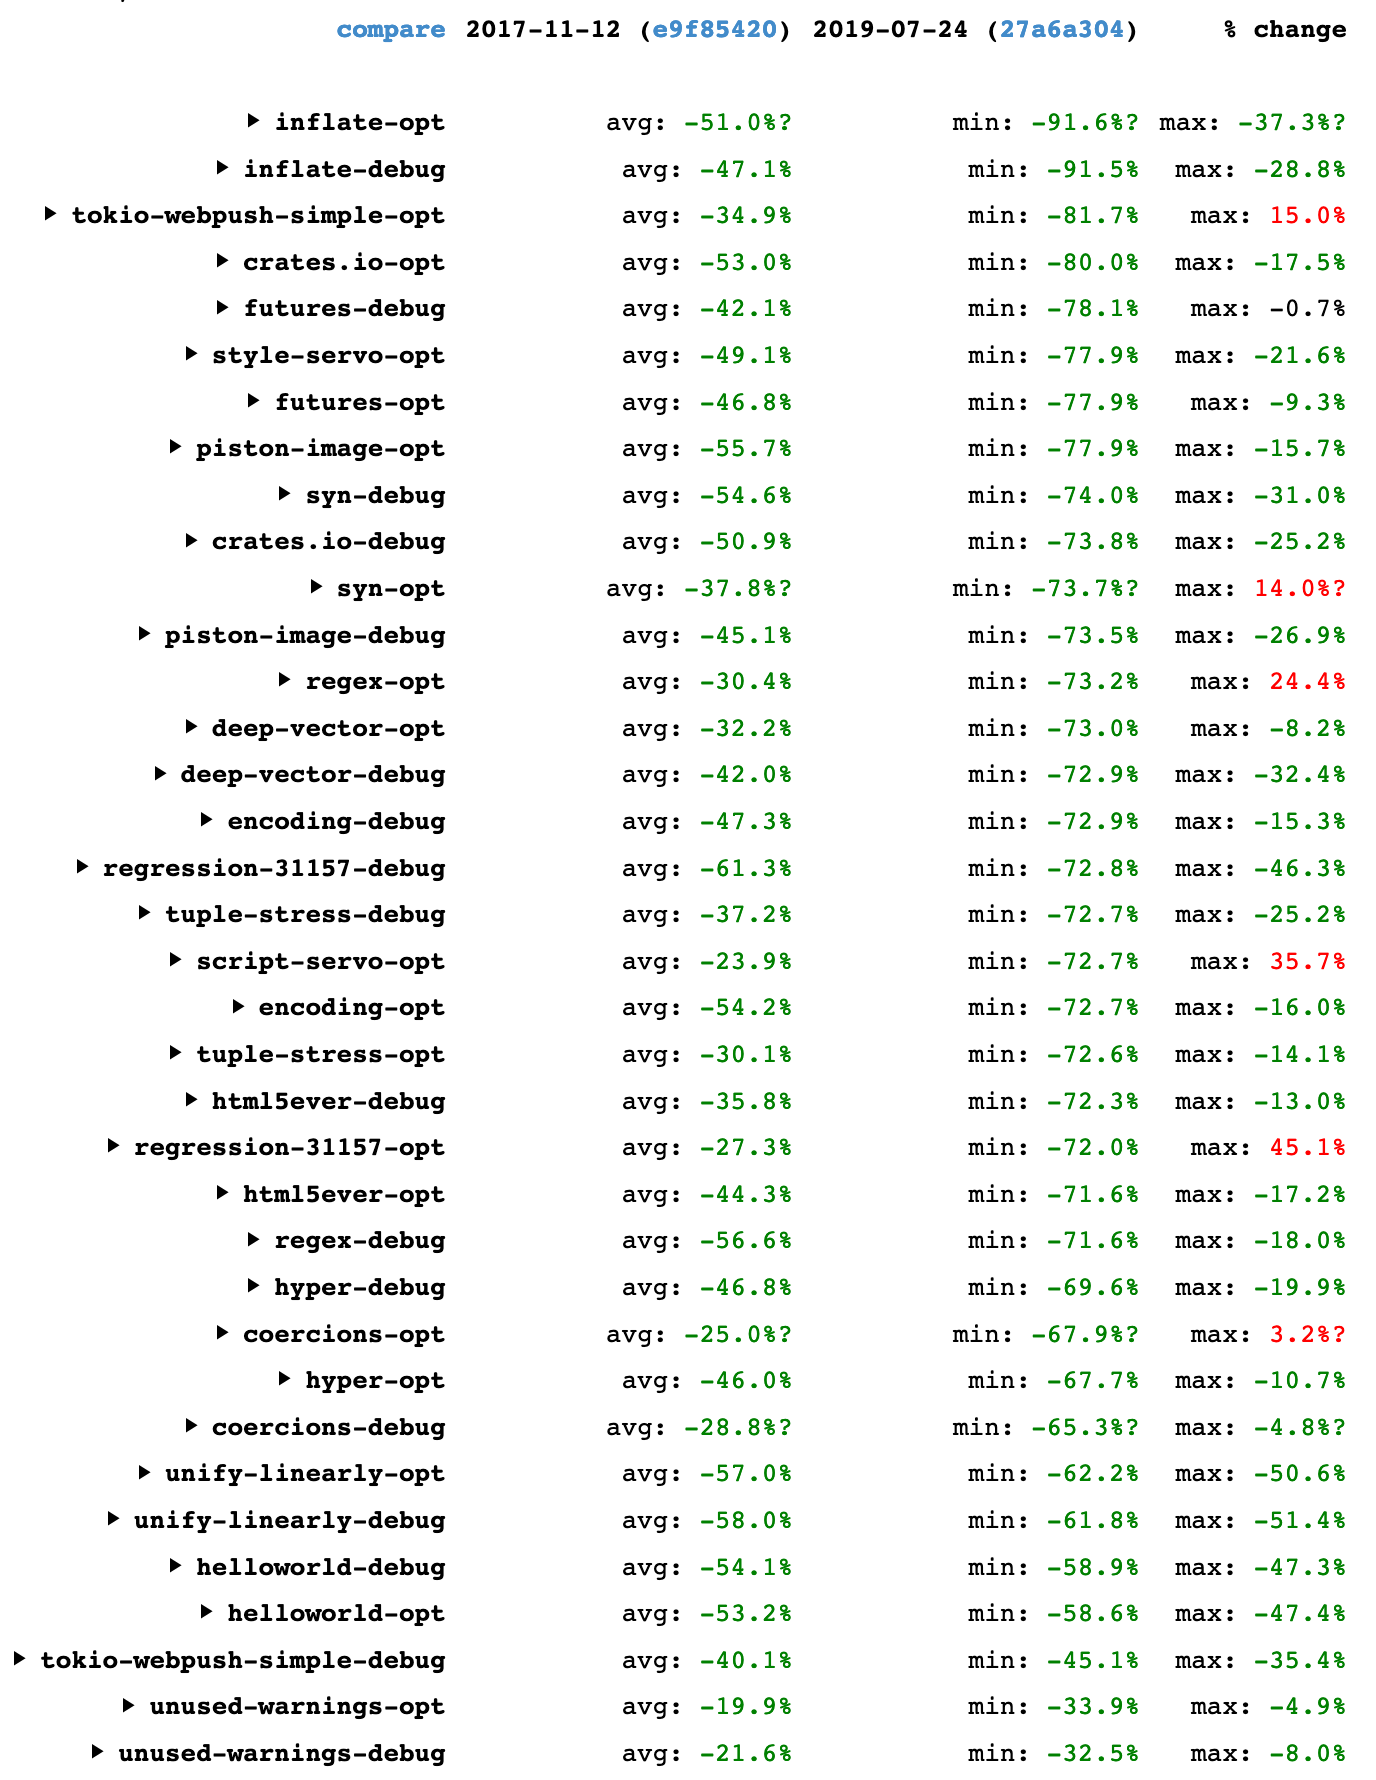 Table showing Rust compiler speedups between 2017-11-12 and 2019-07-24